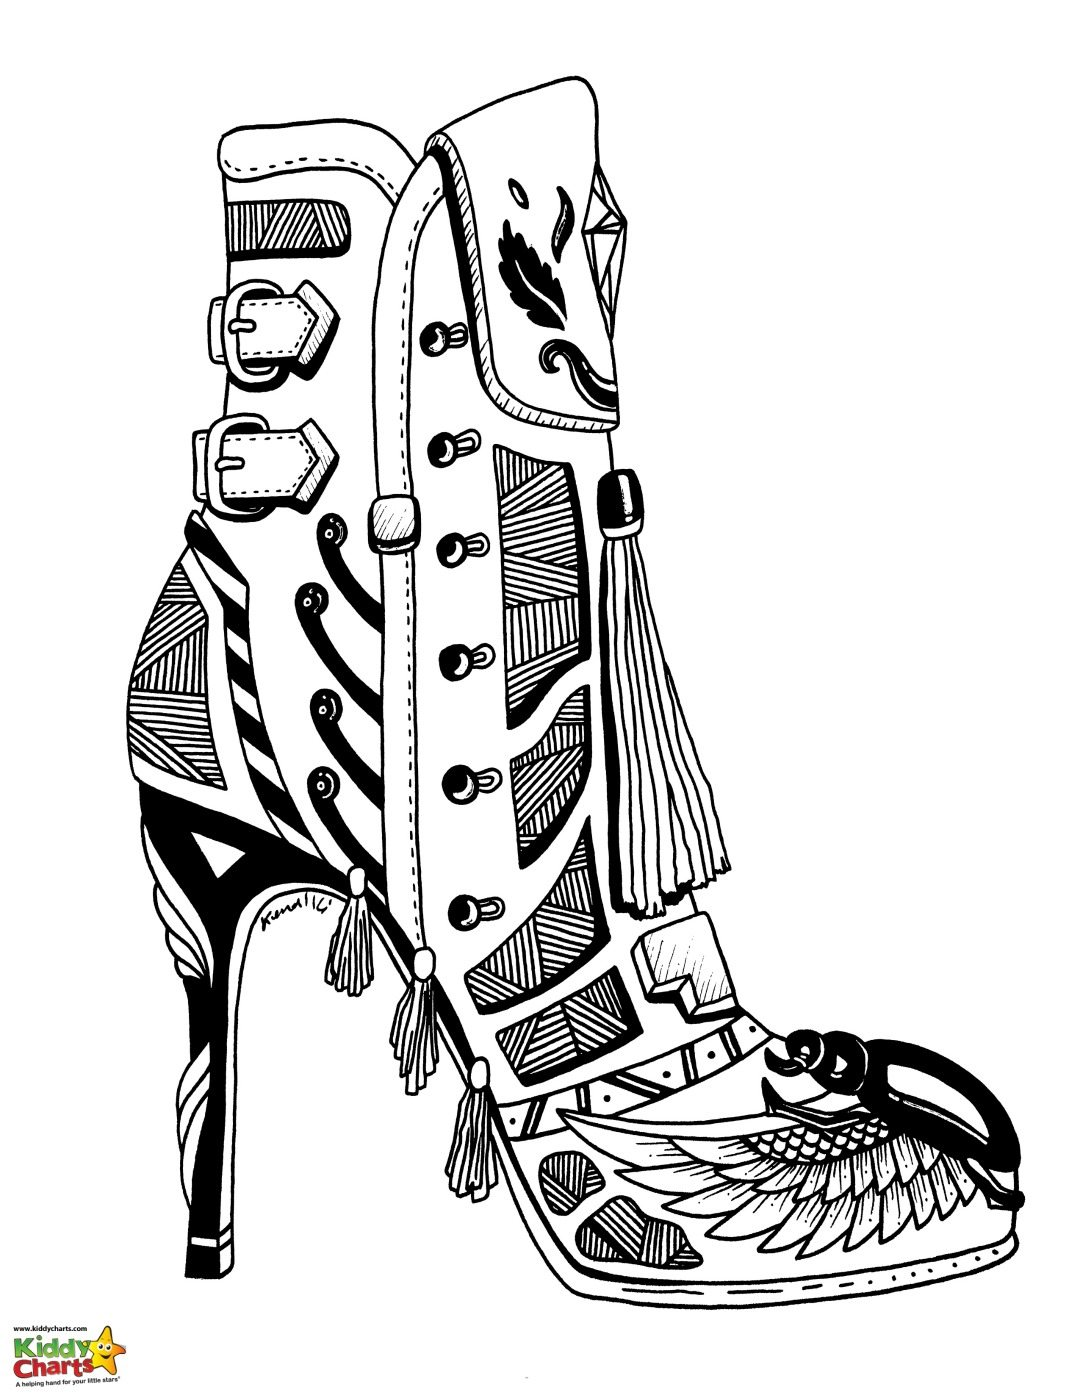 High heel shoe adult coloring page - a lovely 70s style!